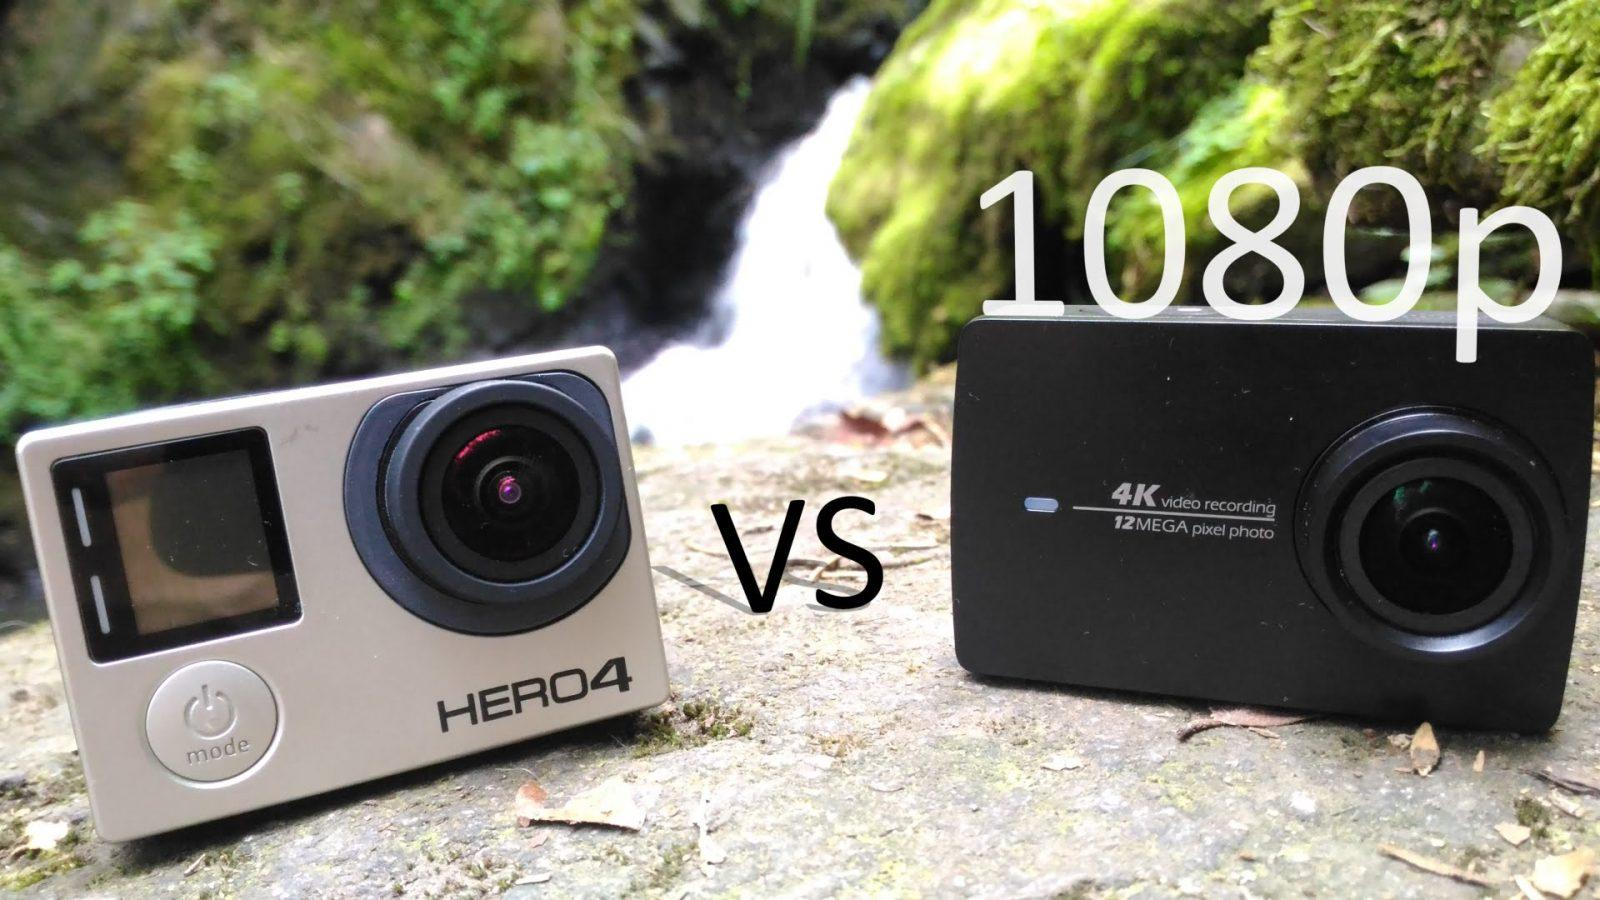 Xiaomi YI 4k VS GoPro Hero4